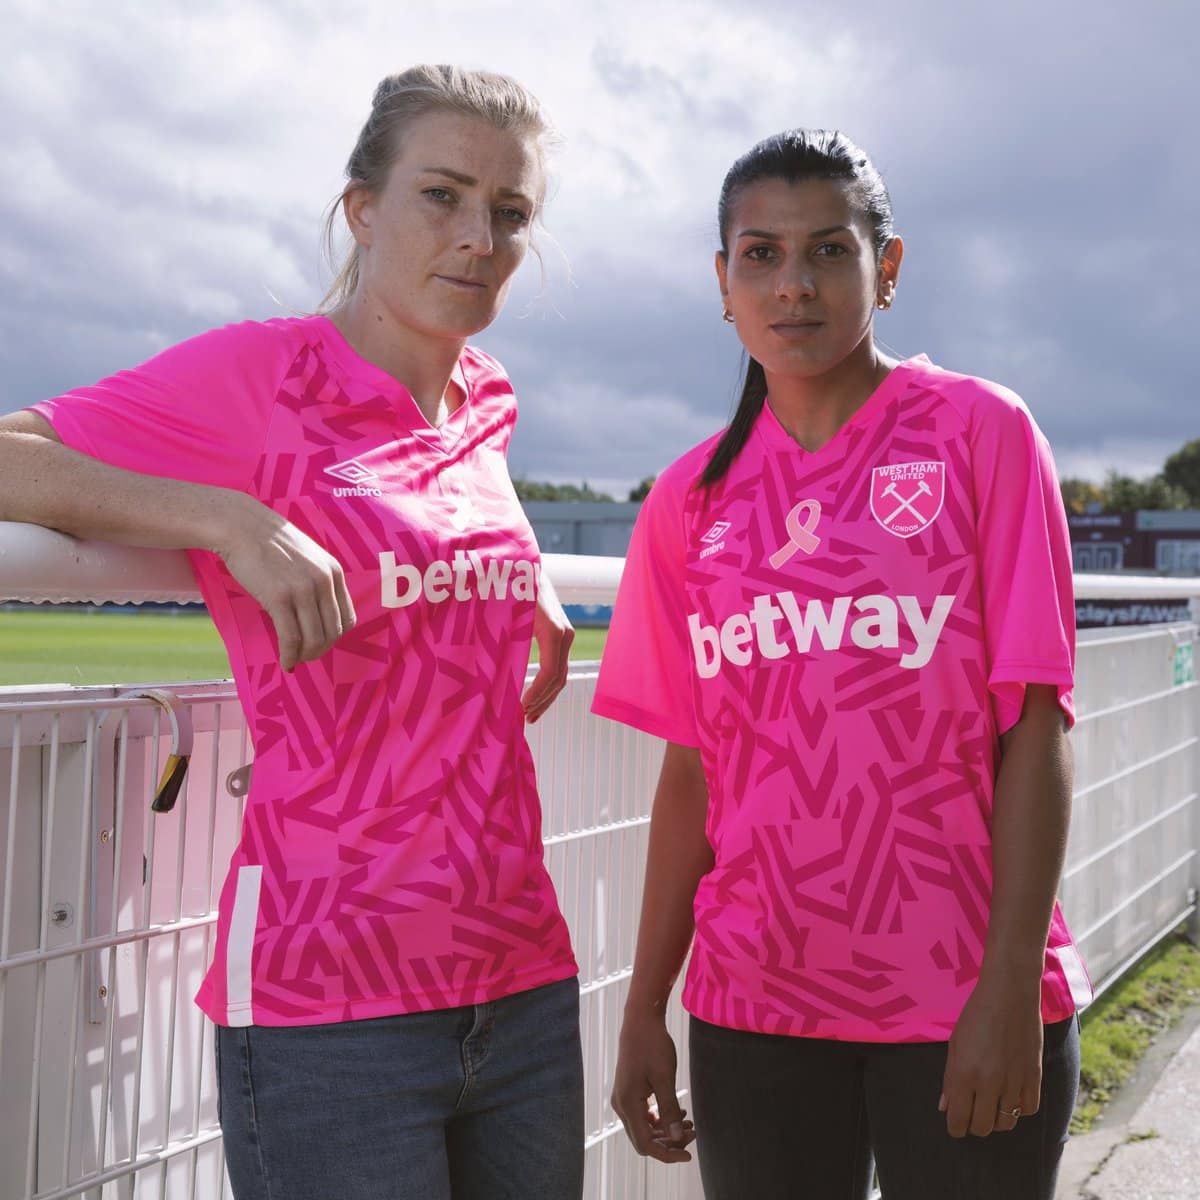 maillot-rose-swet-ham-united-cancer-du-sein-octobre-rose-2